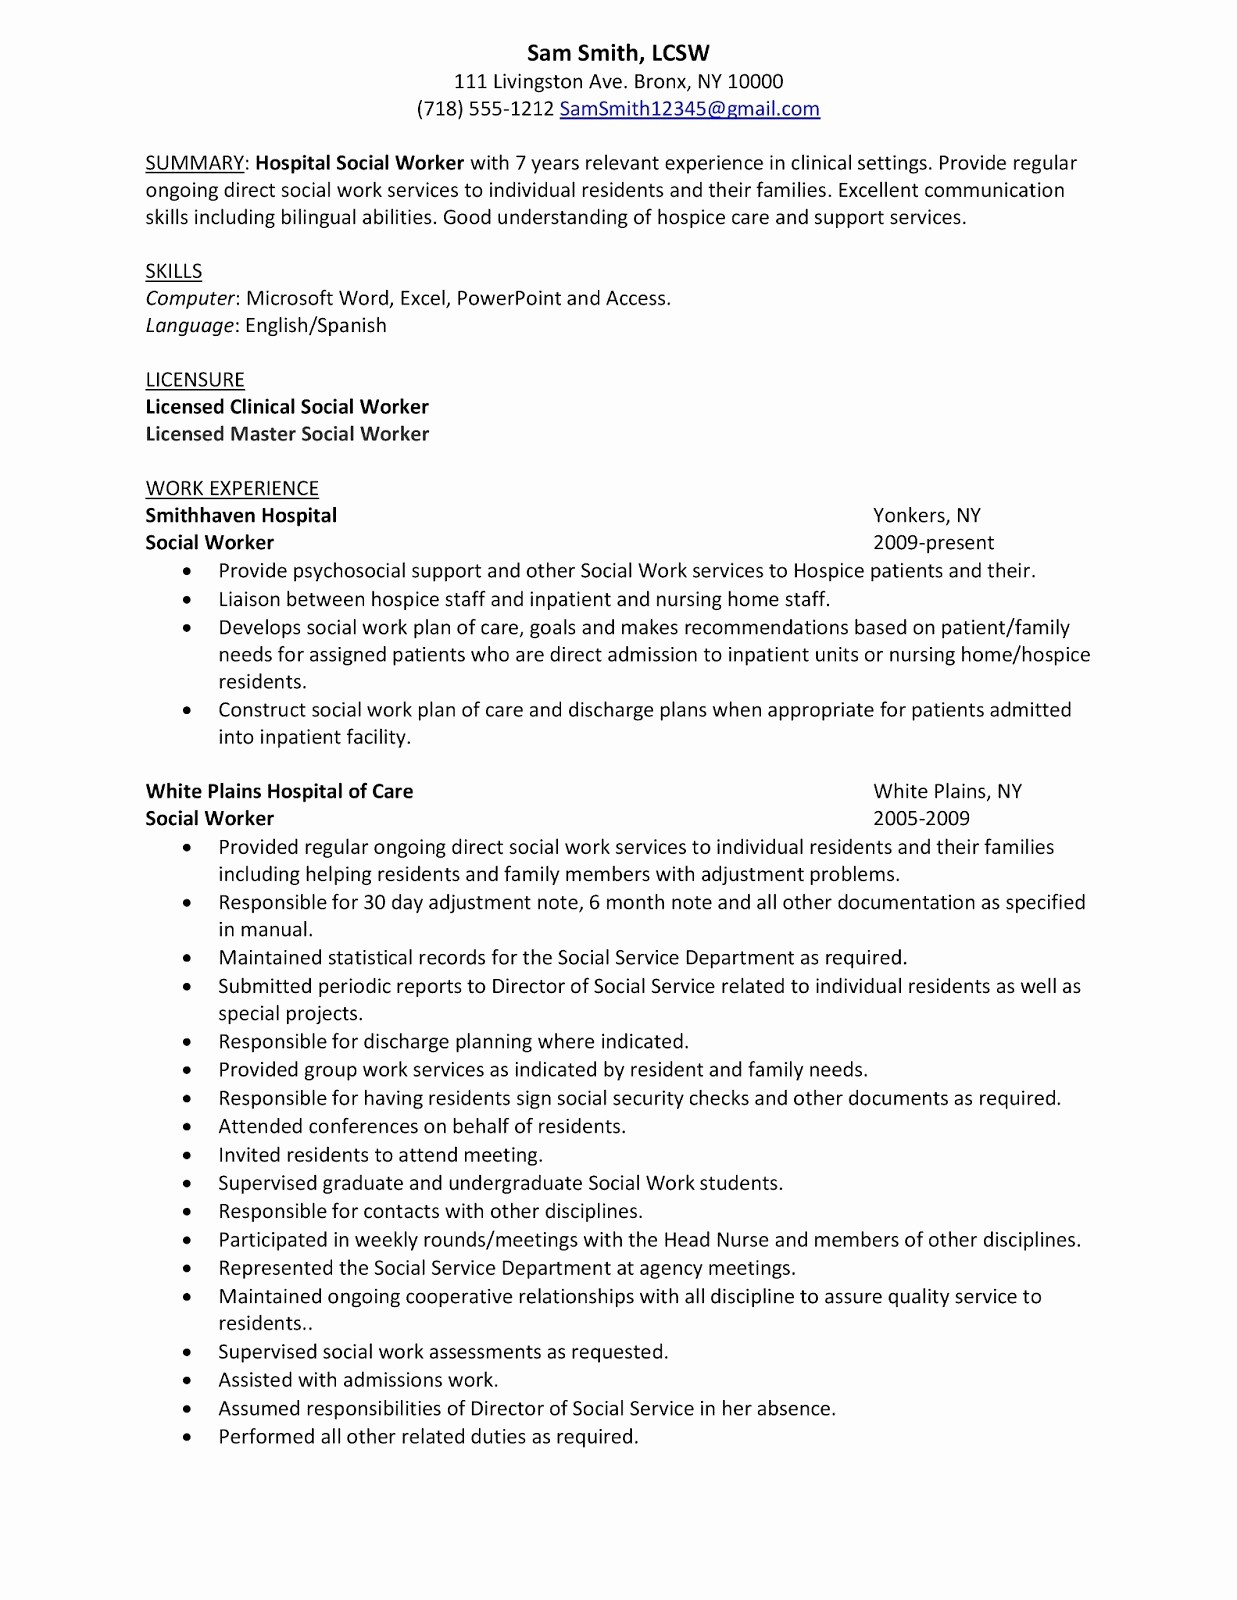 direct care resume example-Direct Care Worker Job Description for Resume 15 Direct Care Worker Job Description for Resume 15-p